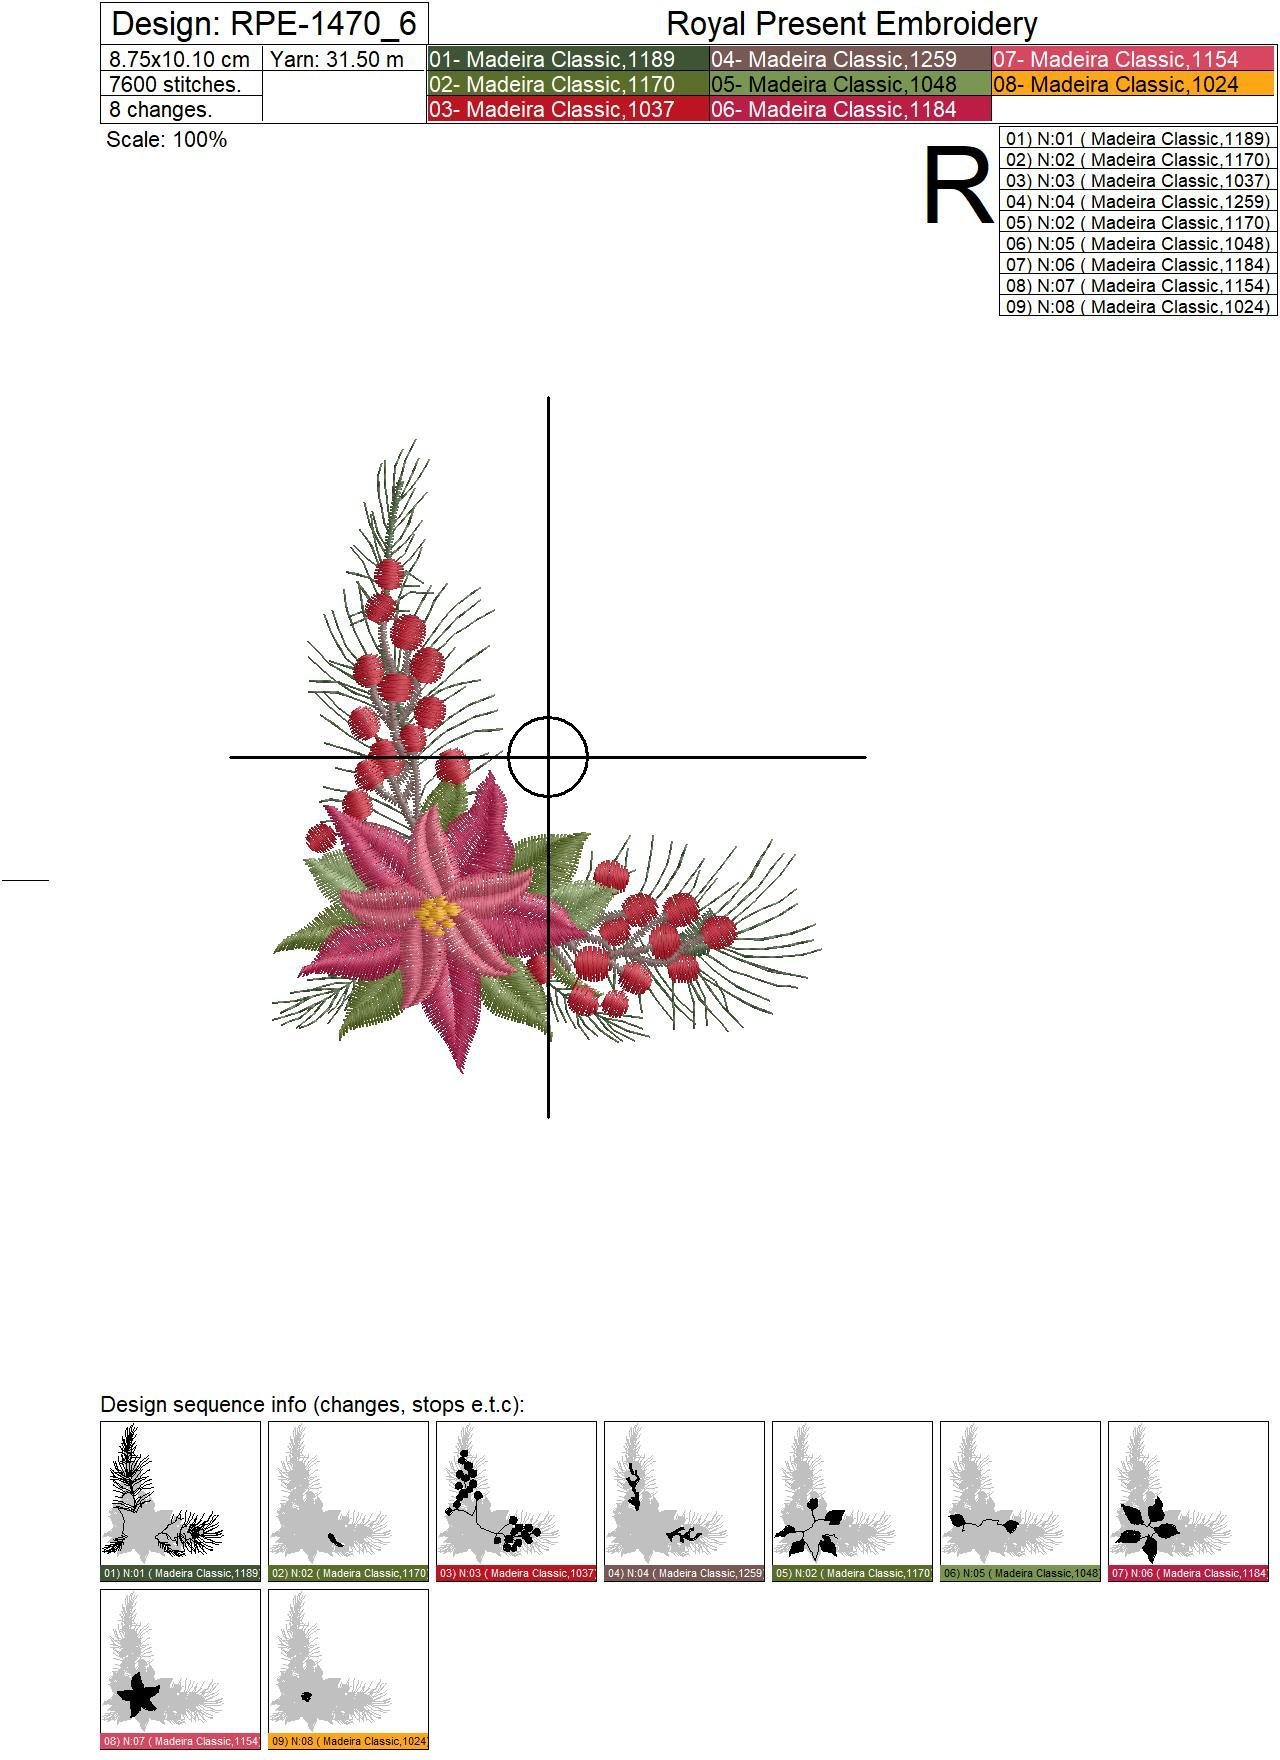 Christmas Corner Embroidery Design with Poinsettia - 2 sizes